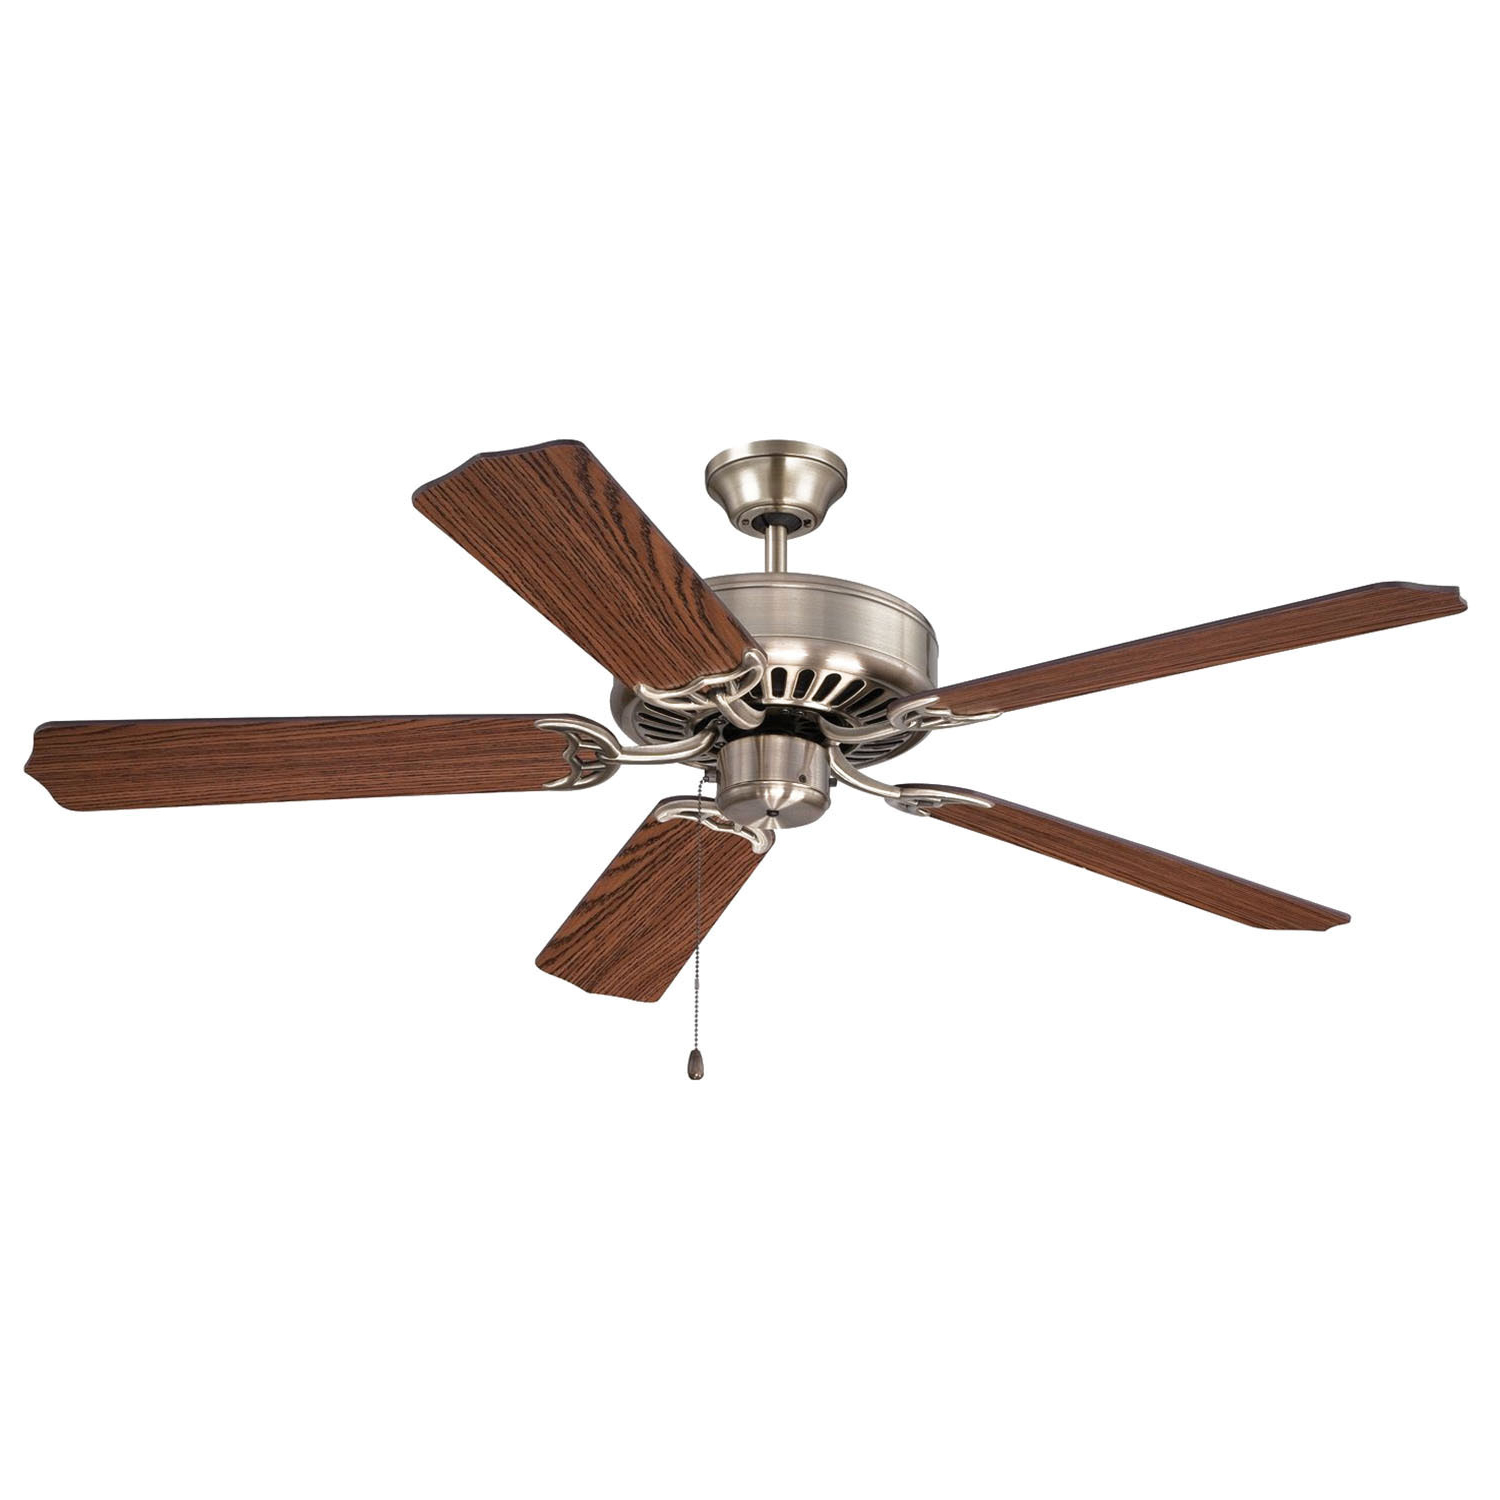 Craftmade C52bnk Pro Builder Ceiling Fan 52 Inch 5 Blade 3 Speed Brushed Polished Nickel In Well Known Builder 5 Blade Ceiling Fans (View 15 of 20)